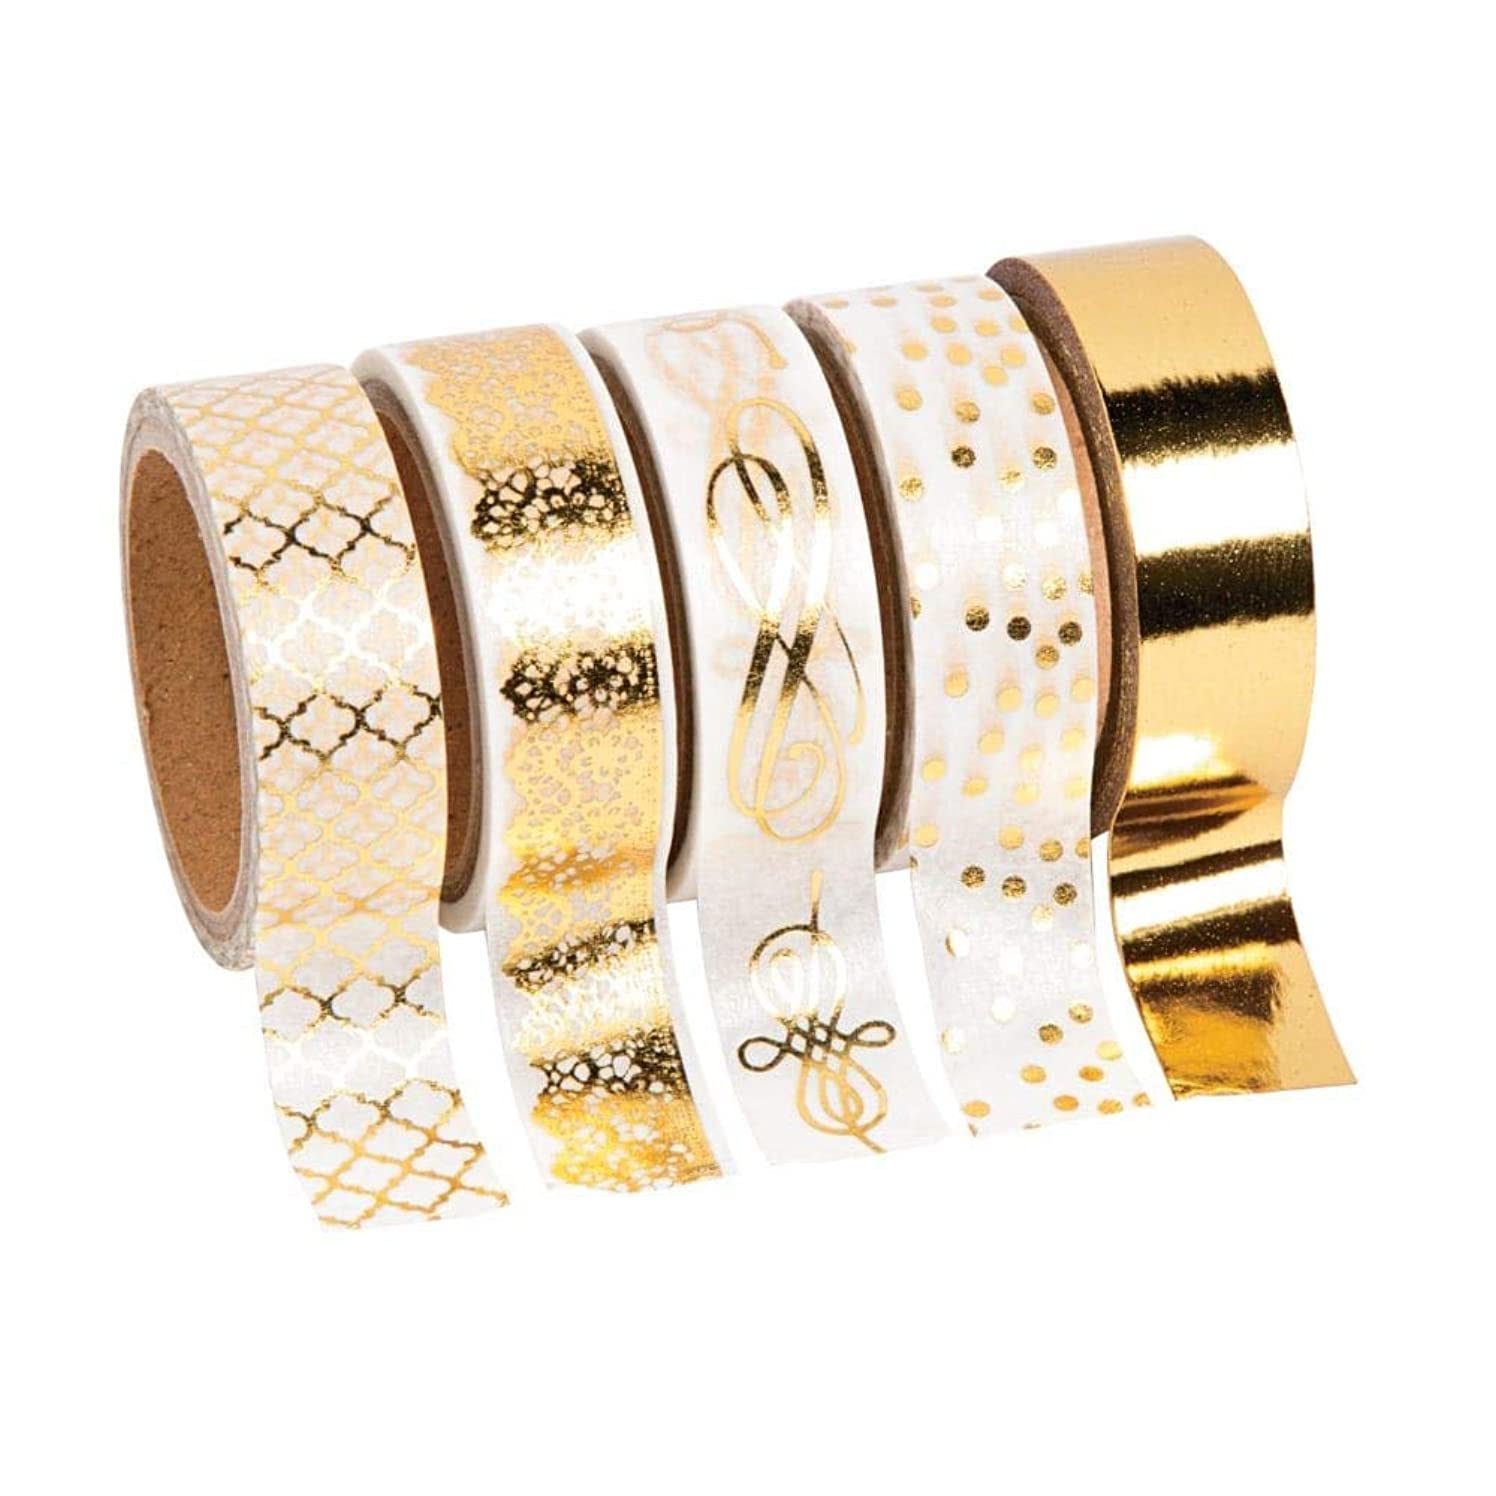 Gold Foil Print Washi Tape (5 rolls/unit) Each roll includes 16 ft. of tape. Paper. (1 Unit)